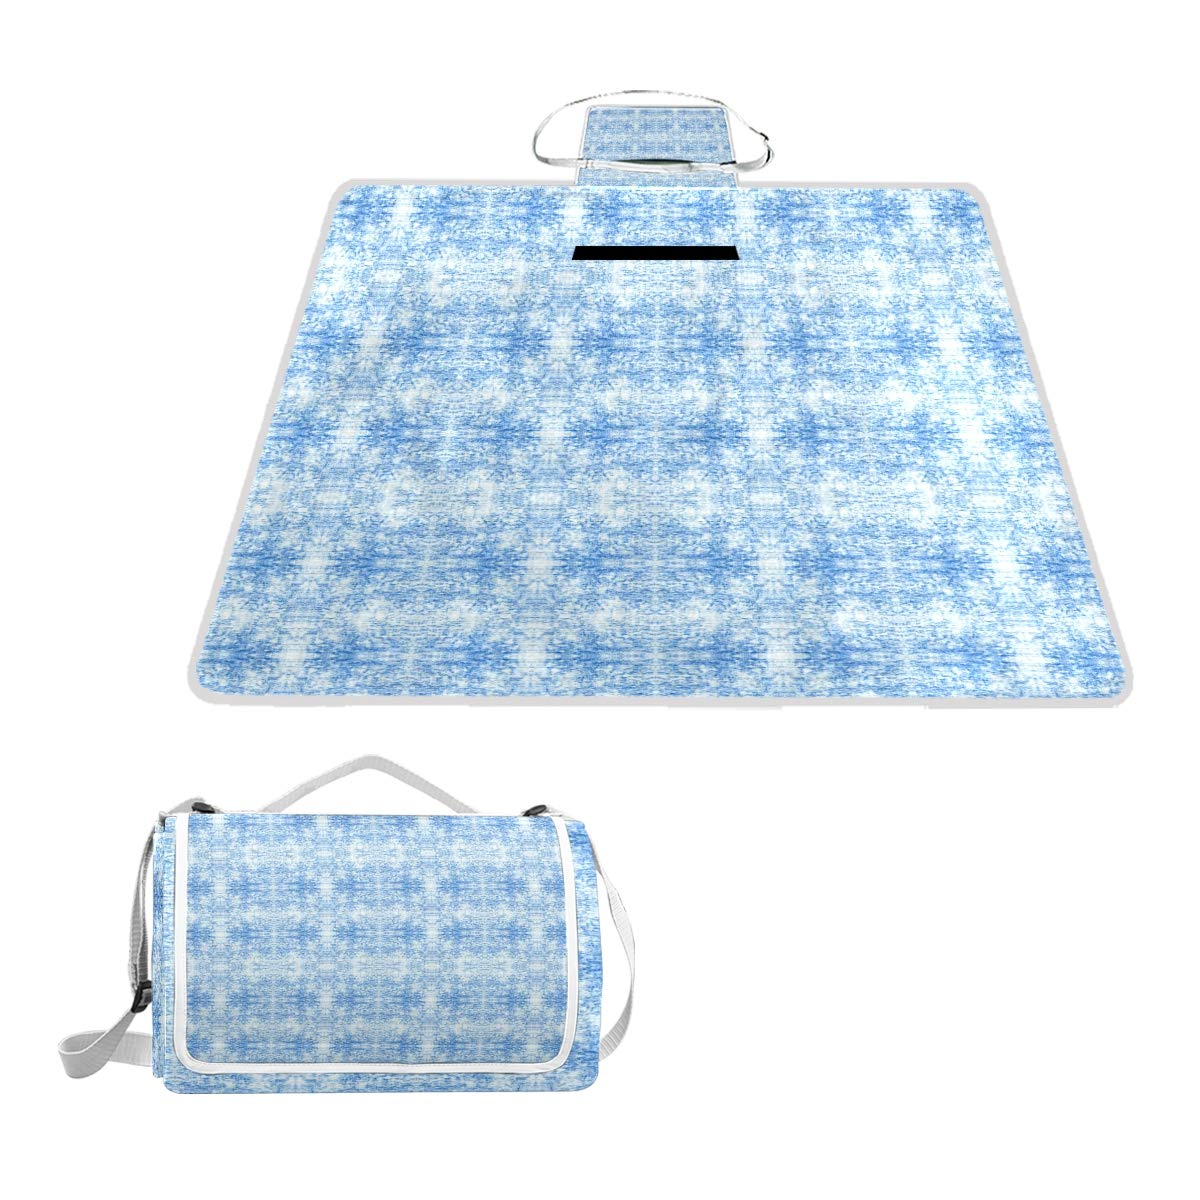 LOIGEIDQ Picnic mat Rchambray Light Waterproof Outdoor Picnic Blanket, Sandproof and Waterproof Picnic Blanket Tote for Camping Hiking Grass Travelling DualLayers by LOIGEIDQ (Image #1)